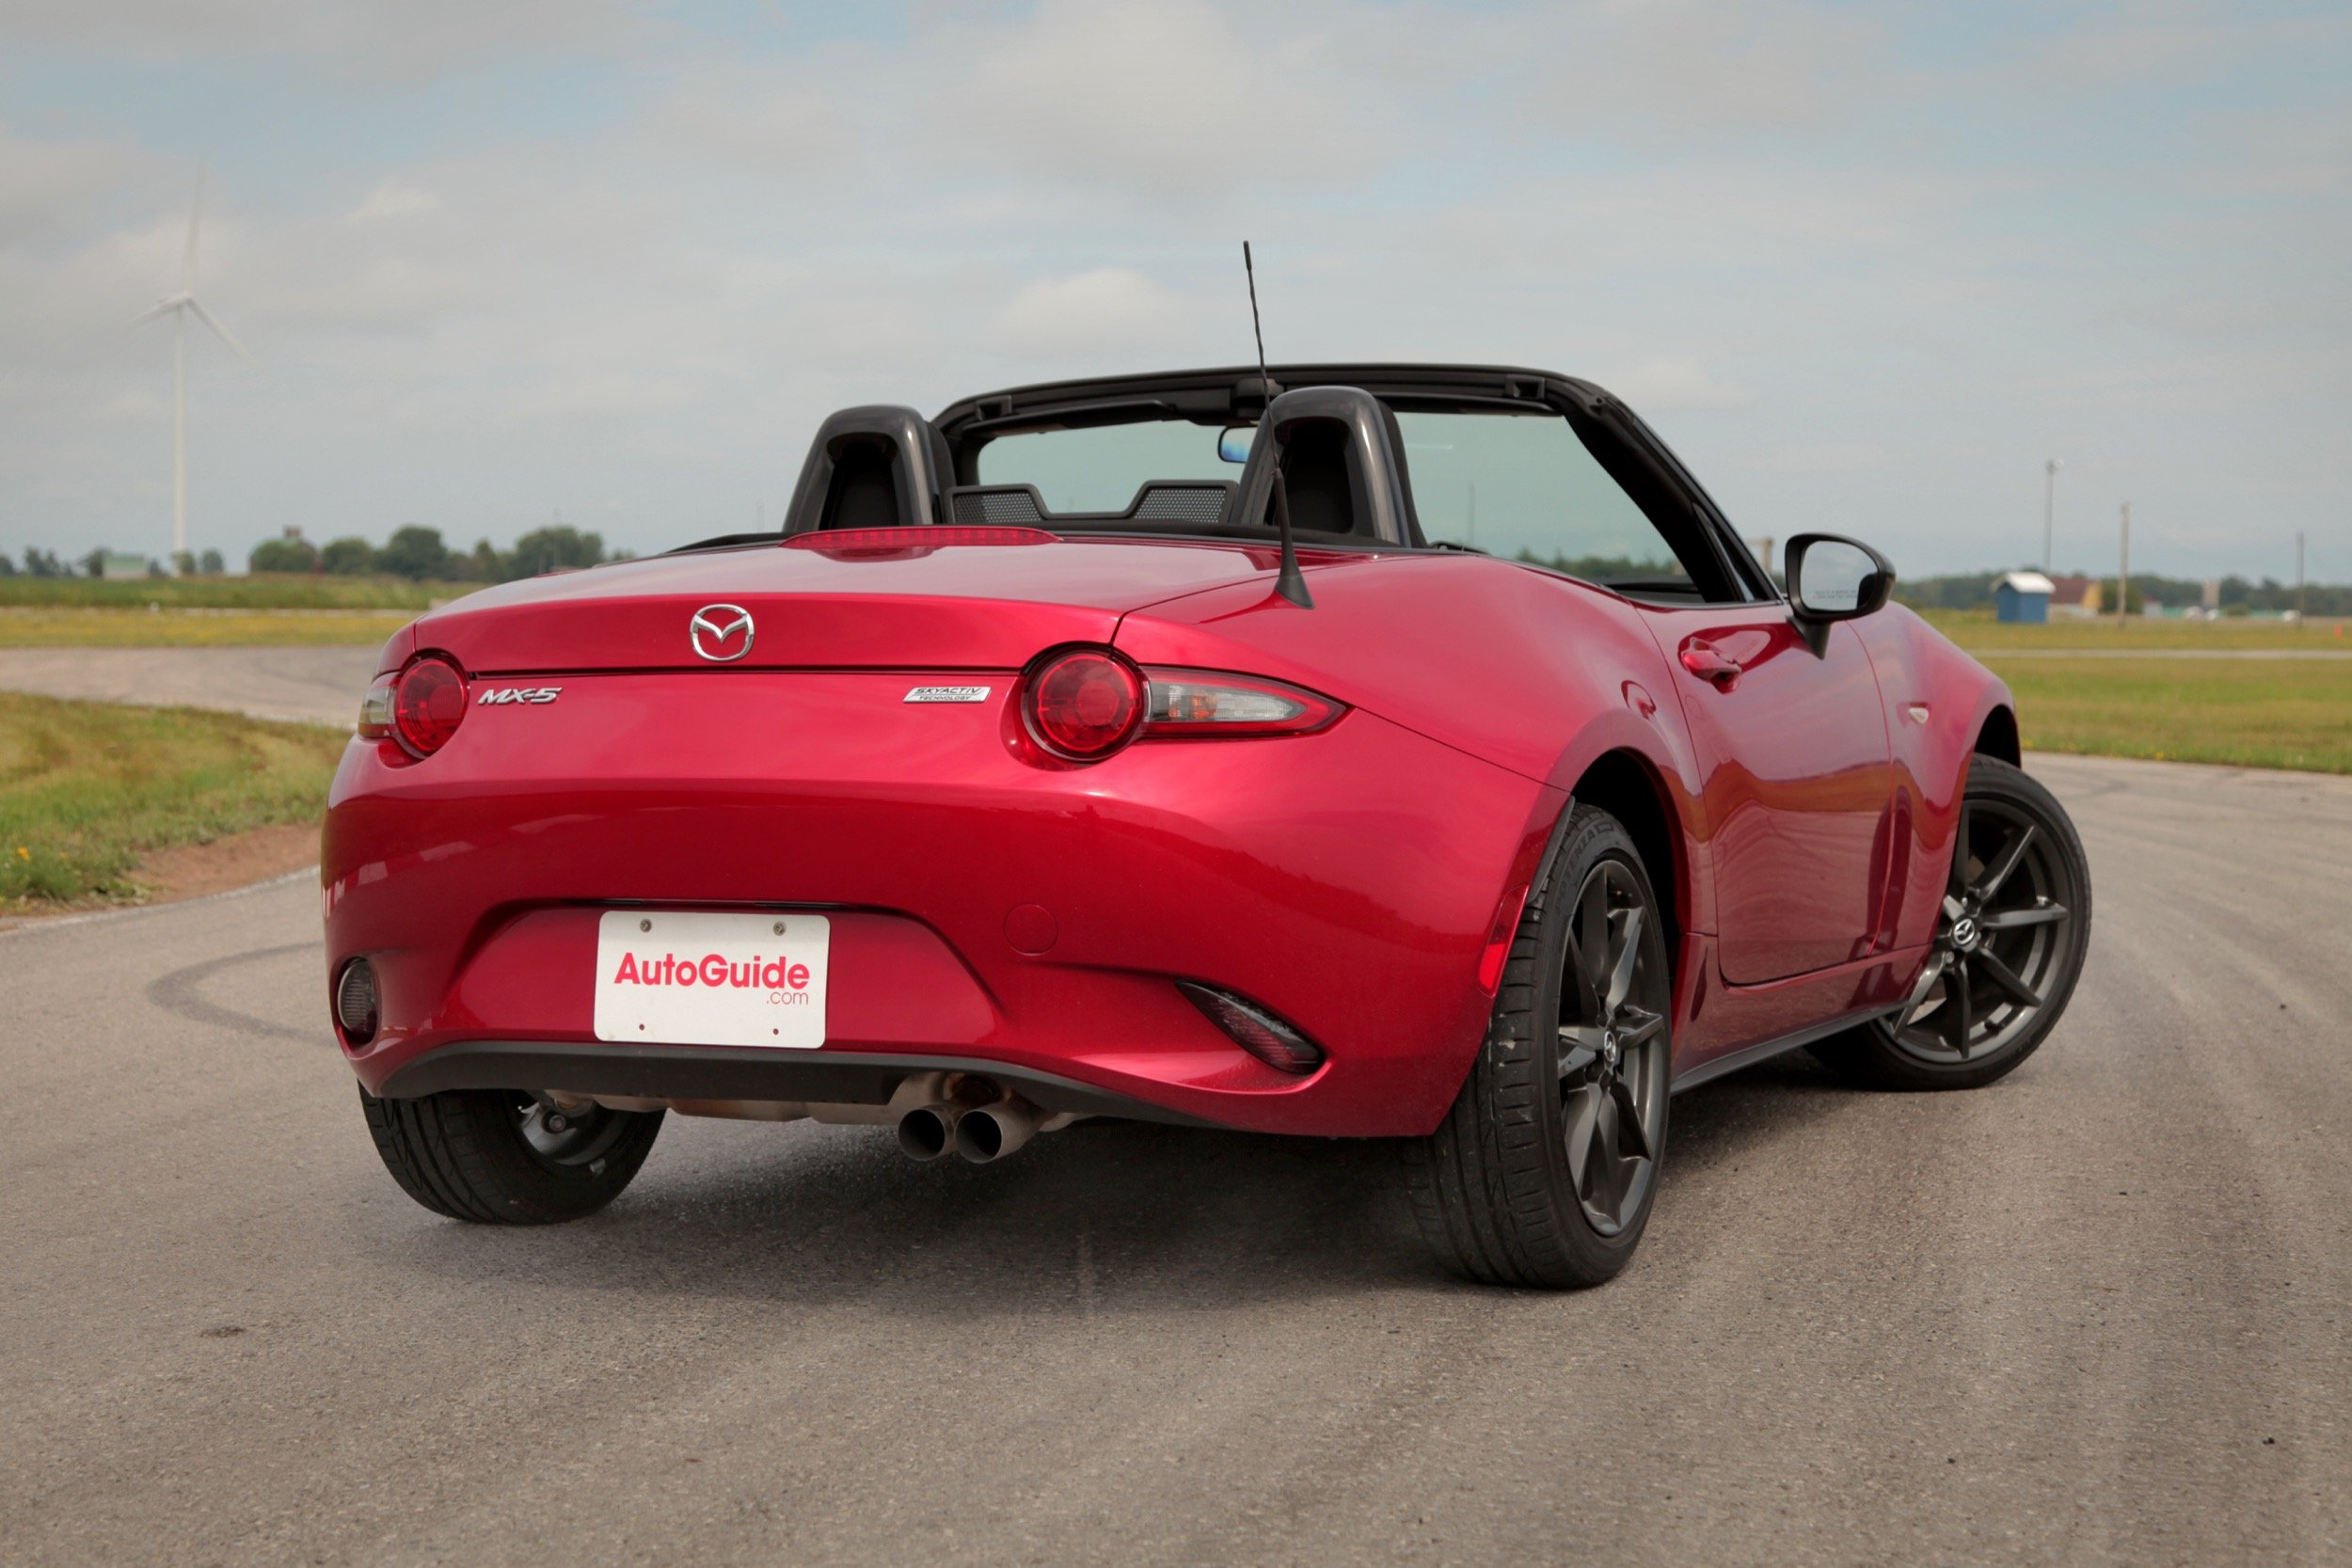 2016 mazda mx 5 miata vs 2015 mazda mx 5 miata news. Black Bedroom Furniture Sets. Home Design Ideas